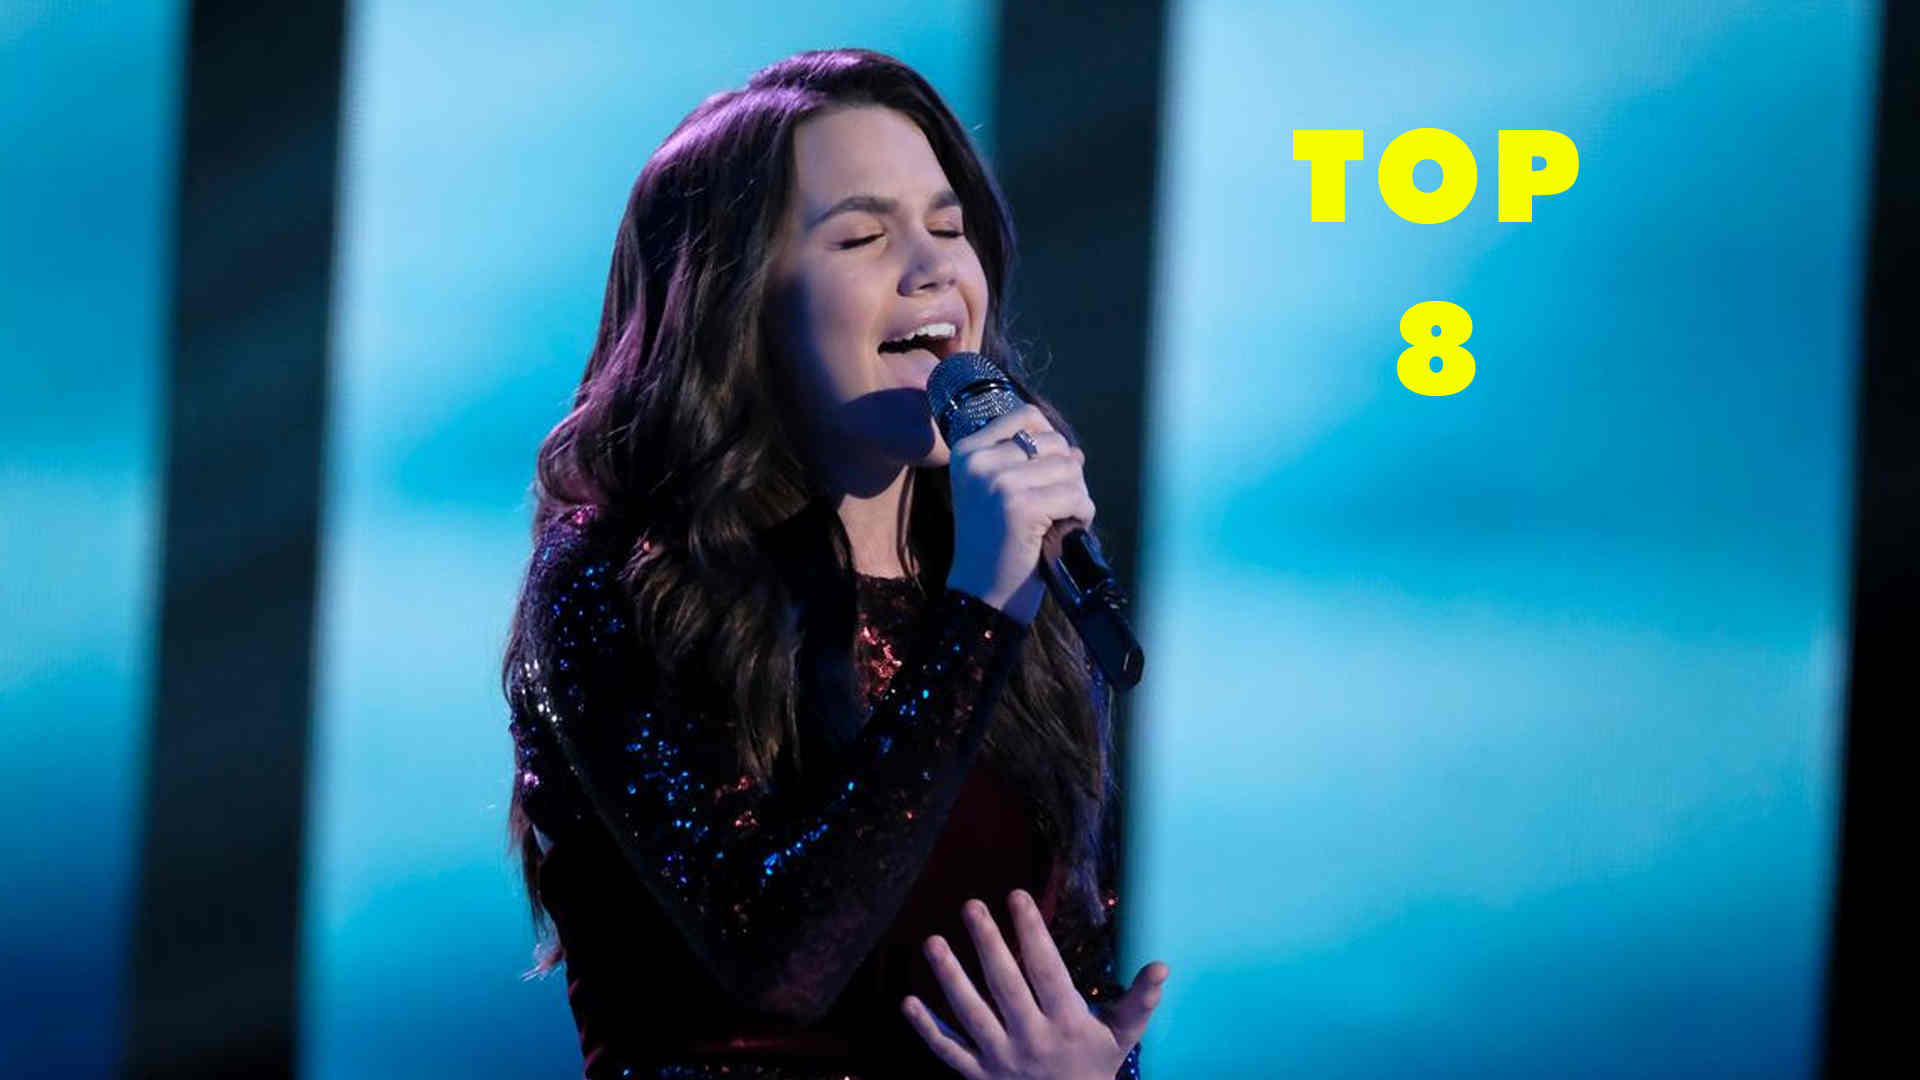 Vote Reagan Strange the Voice 2018 Live Top 8 (Semifinals) on 10 December 2018 with the Voice 2018 Voting App Online